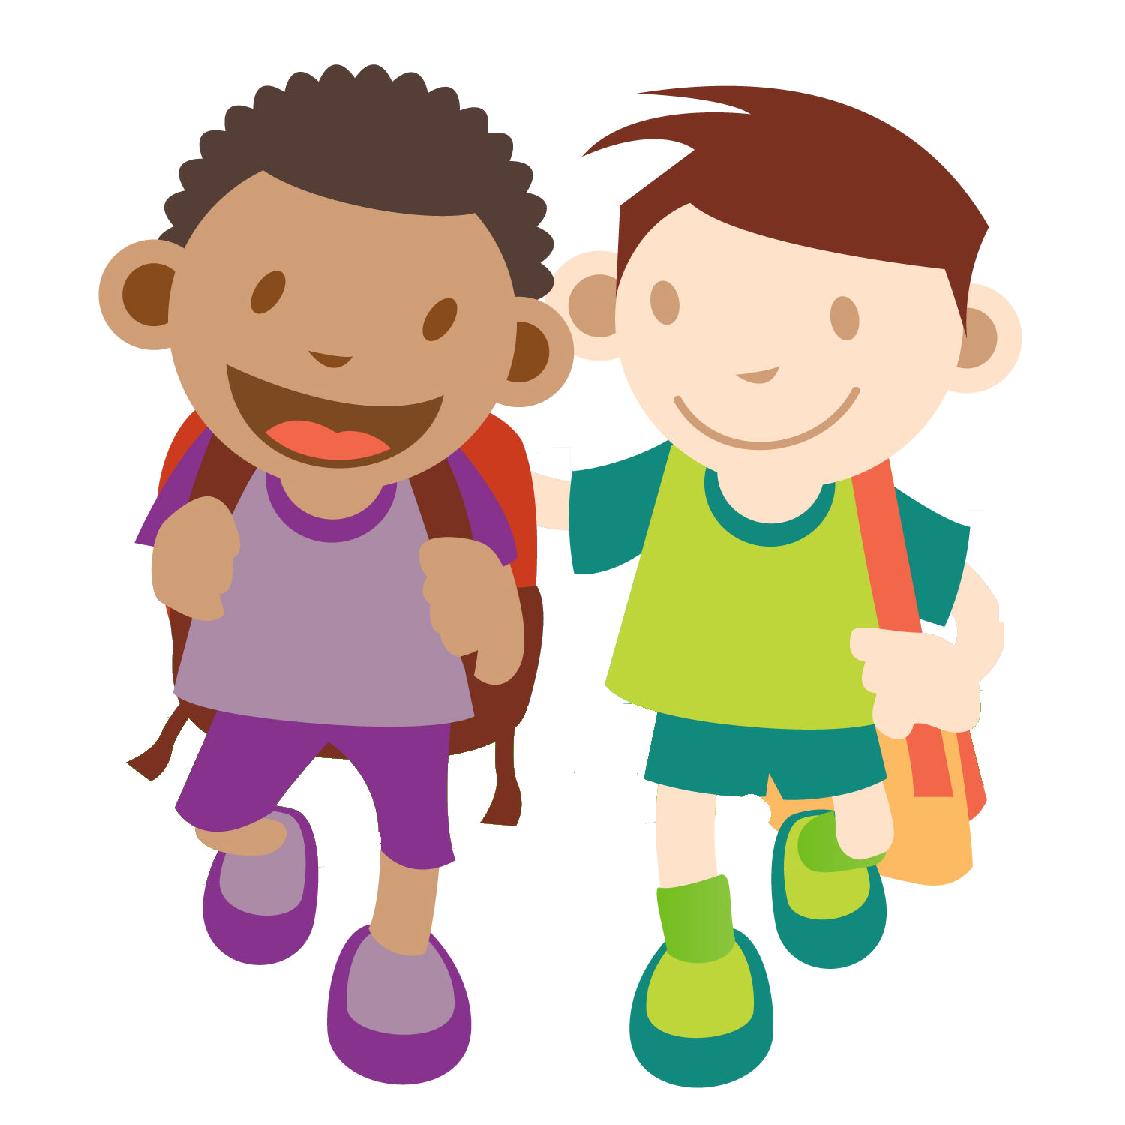 Welcome to preschool clipart free images image 2